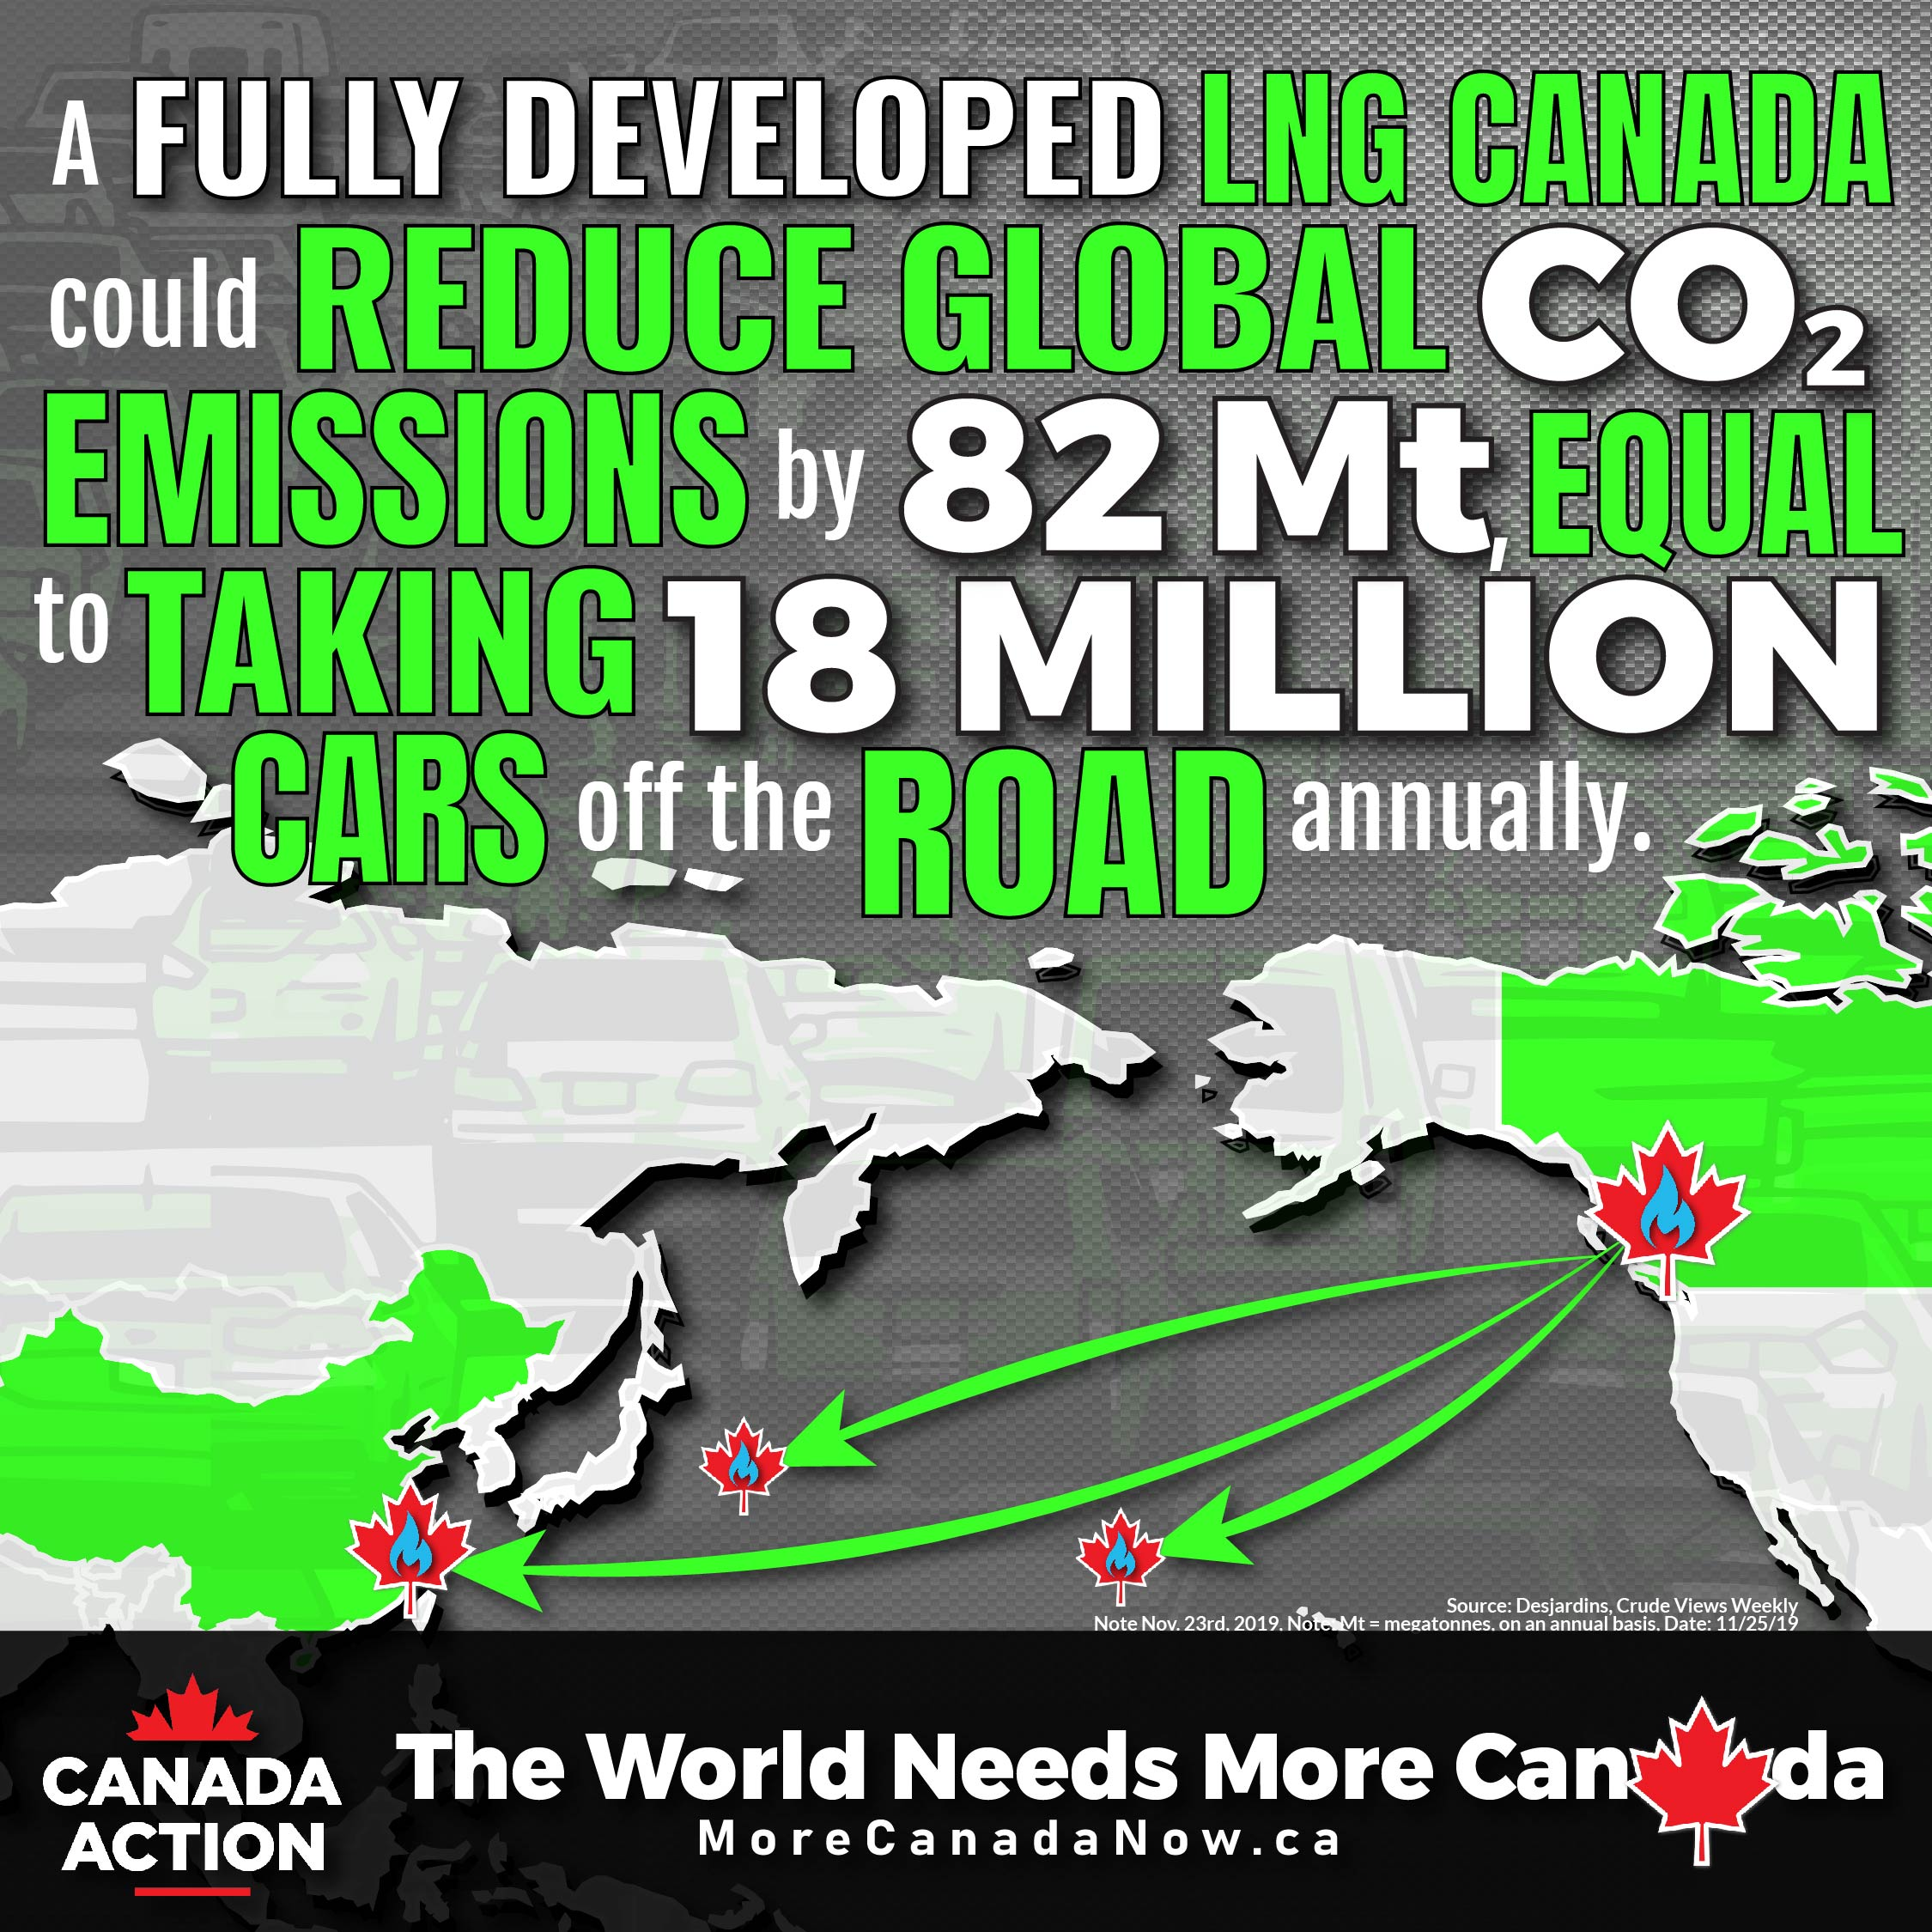 LNG Canada Emission Reductions Equal to Removing 18 Million Cars off the Road